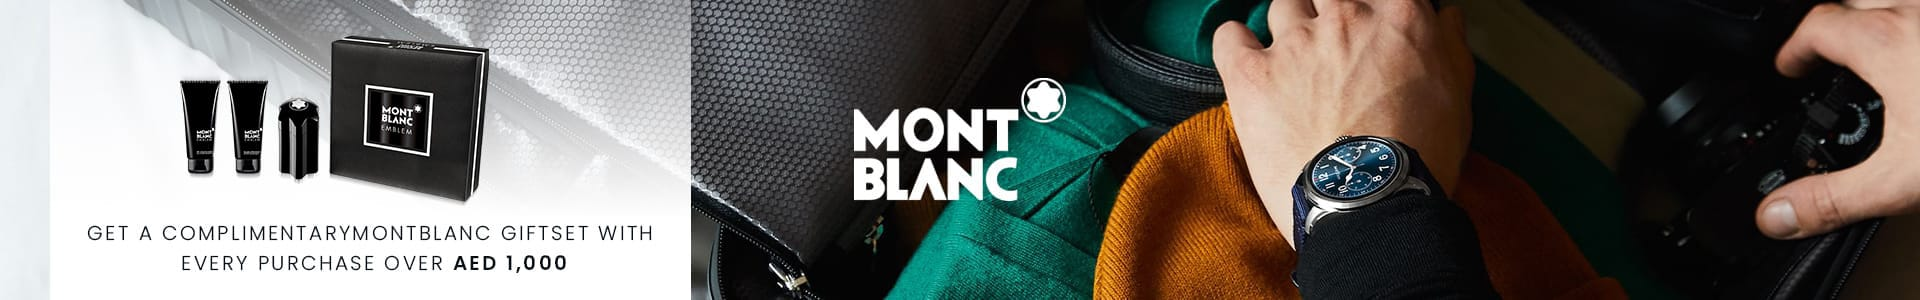 Montblanc Promotion